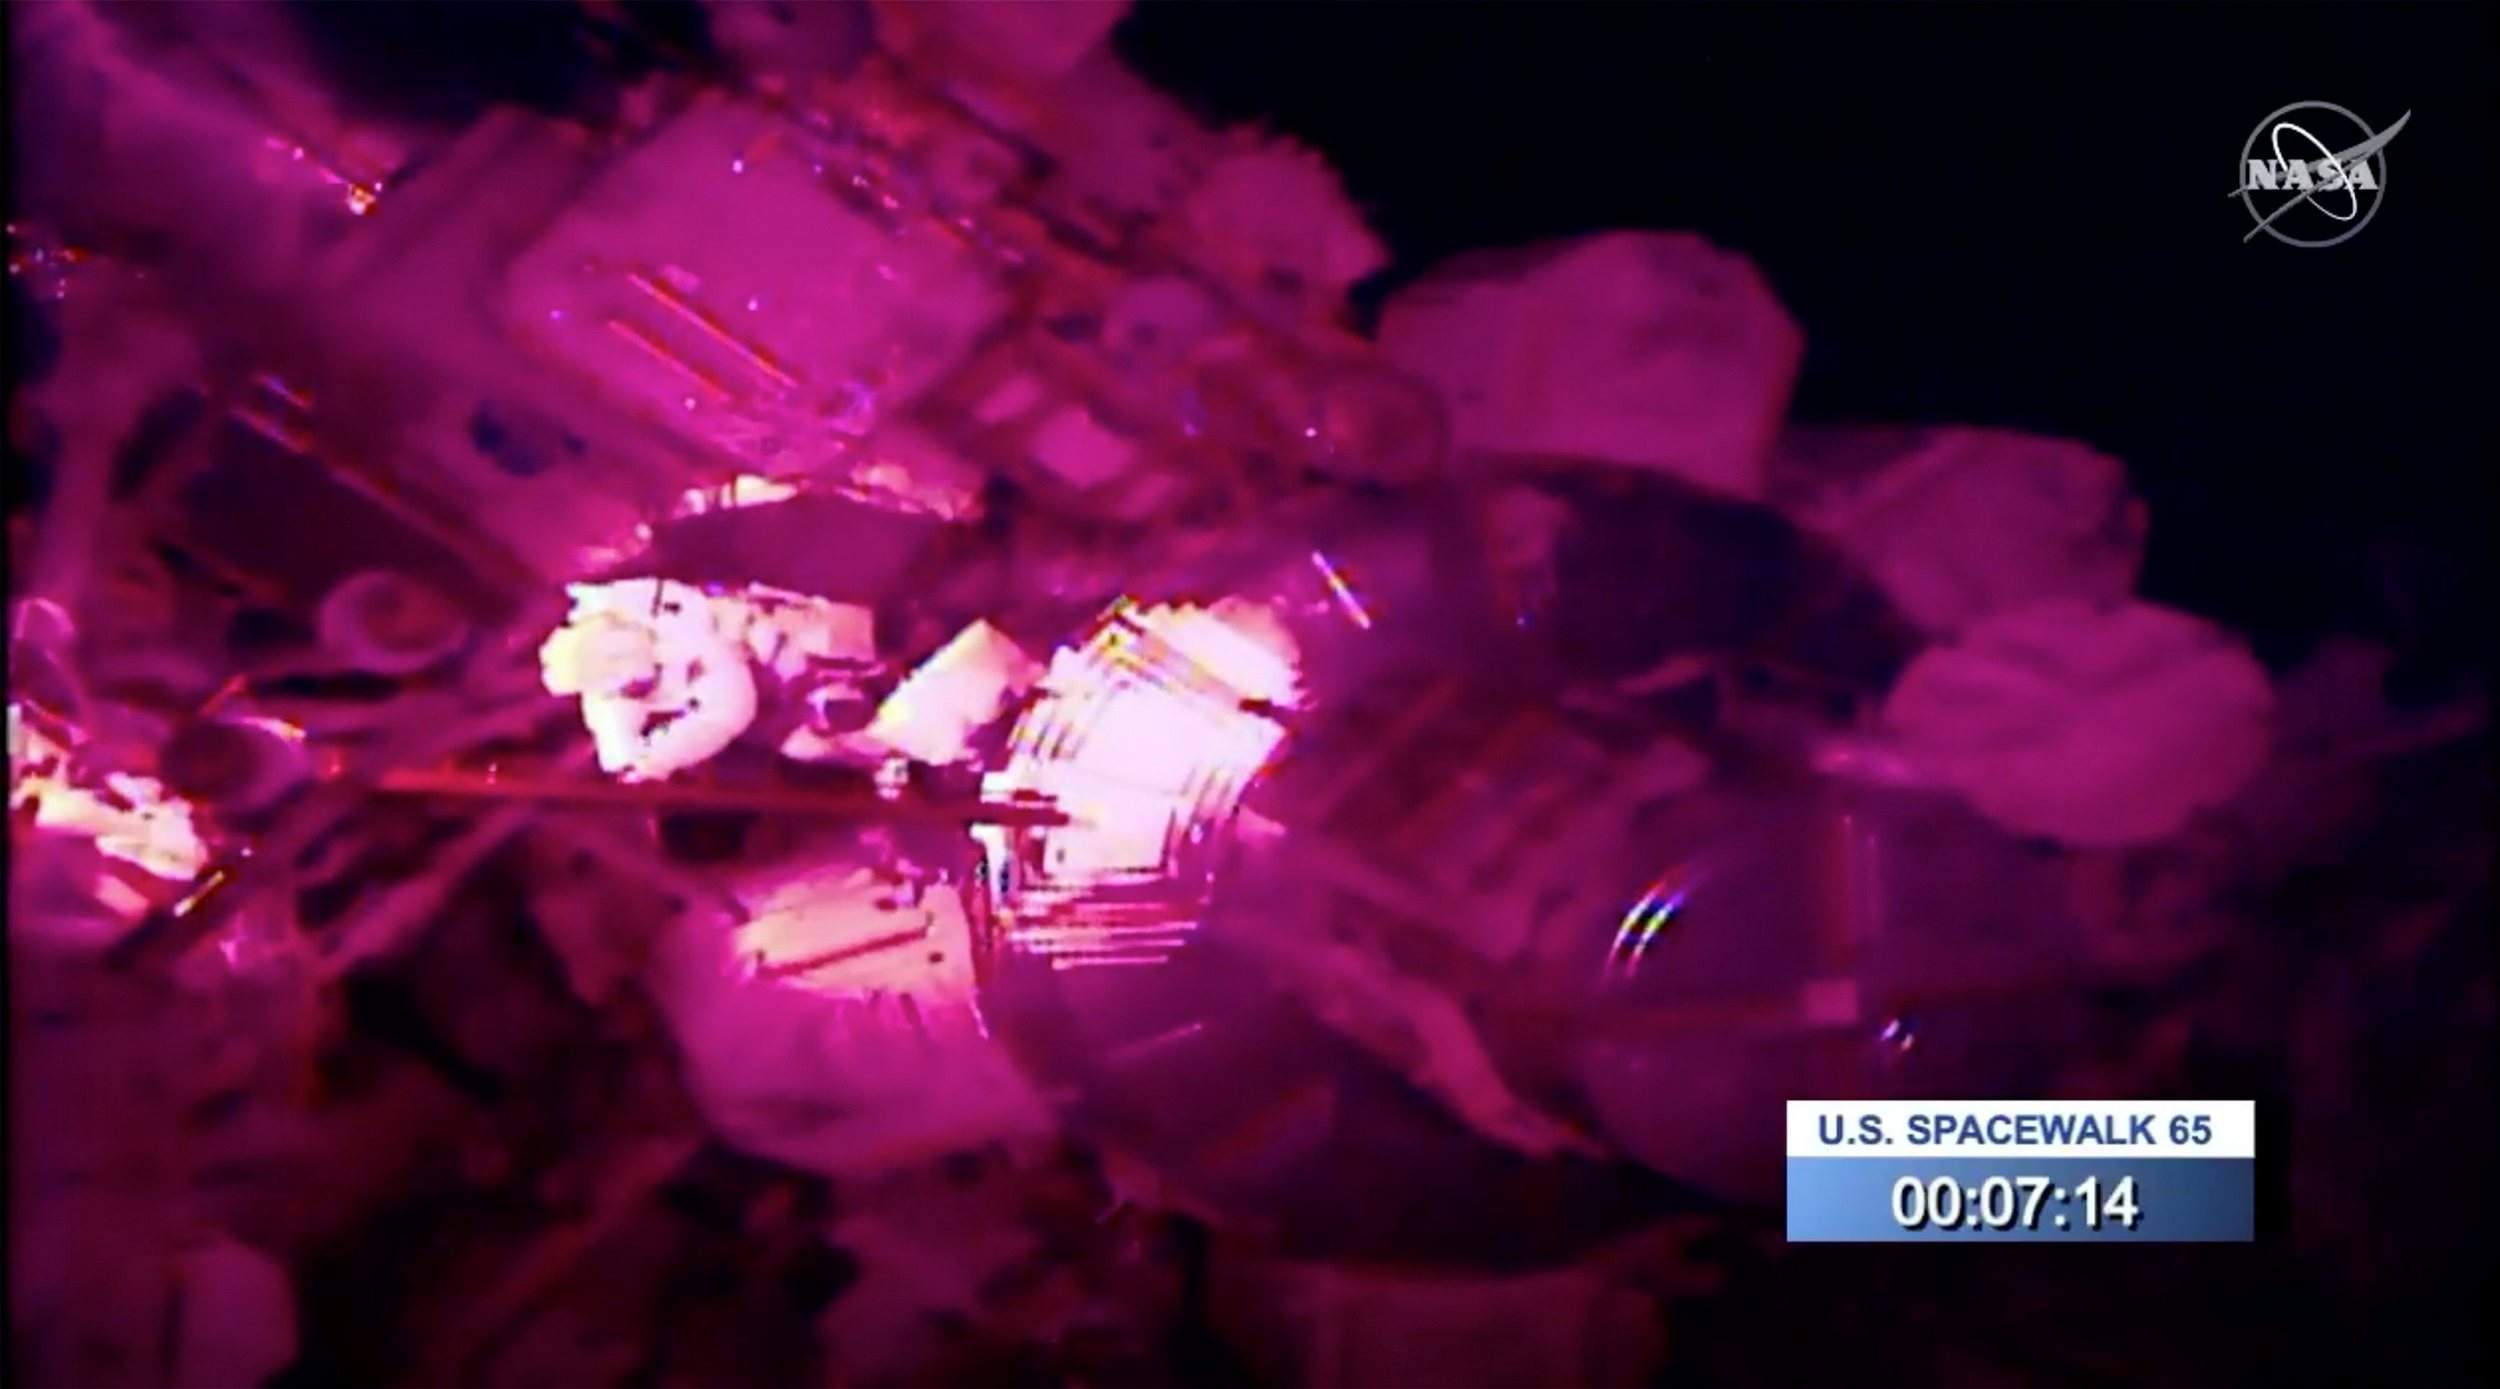 Astronaut loses mirror, adding to space junk